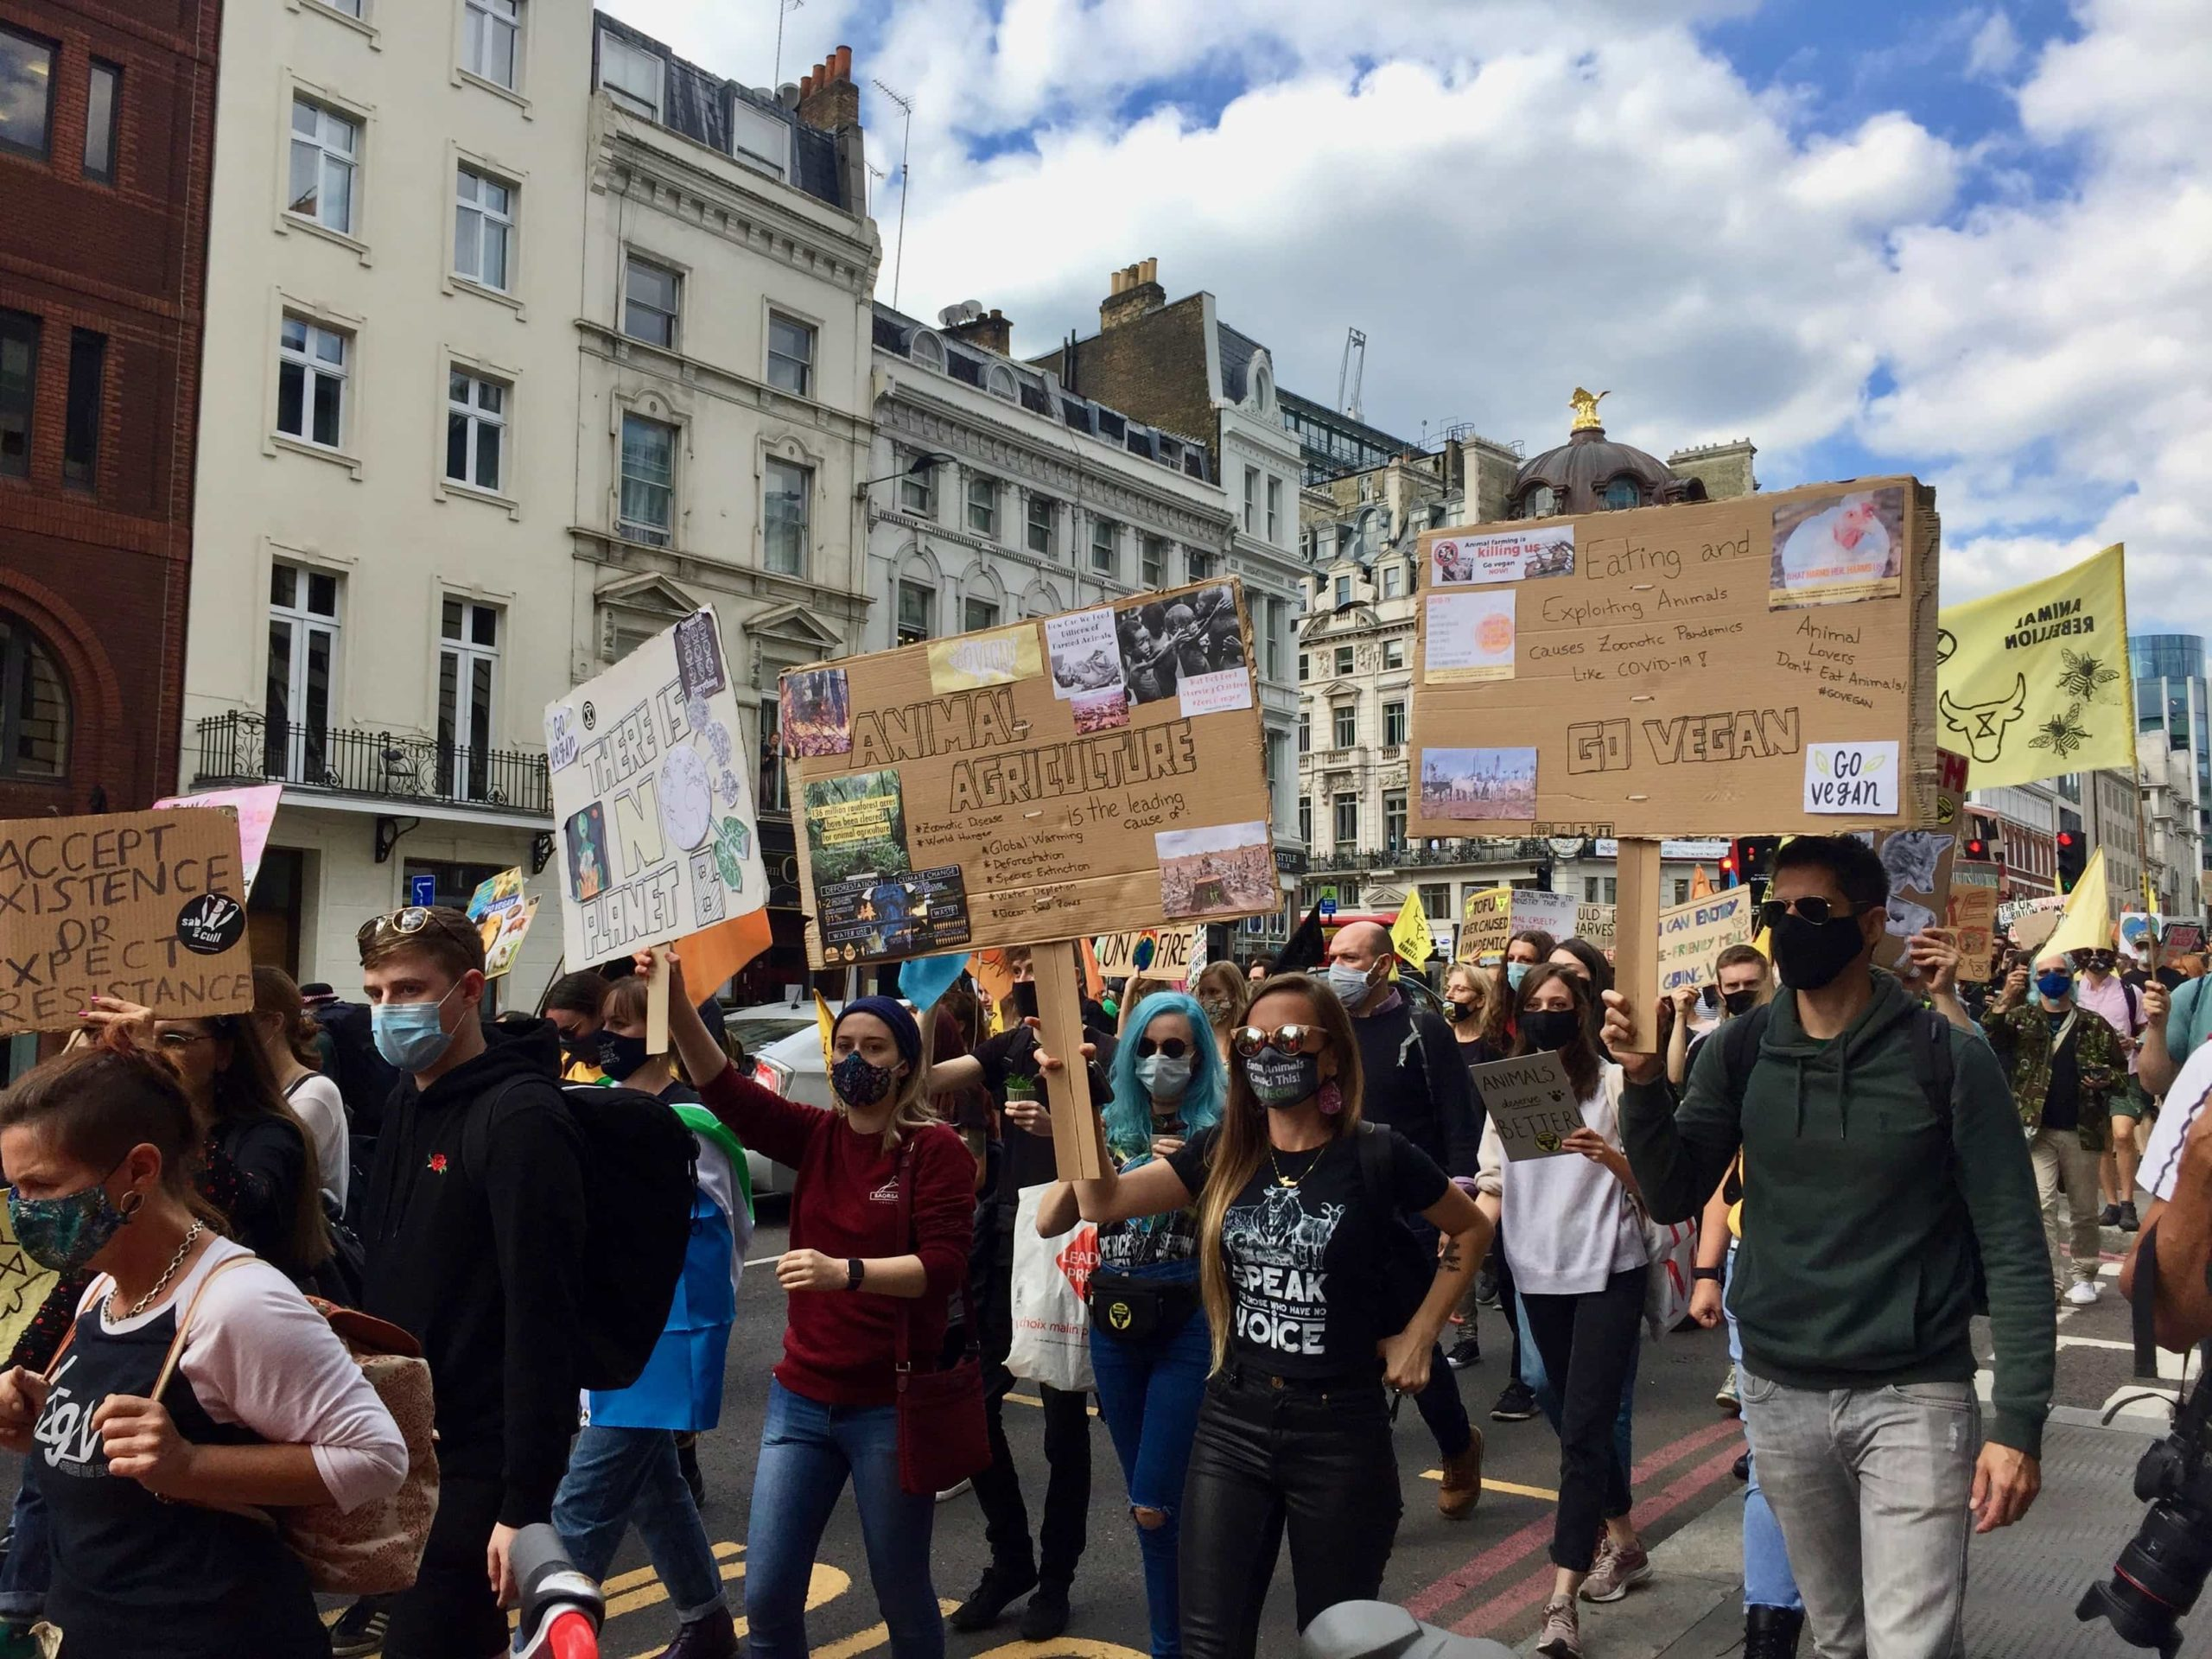 Marching to Parliament Square with Animal Rebellion, September 2020